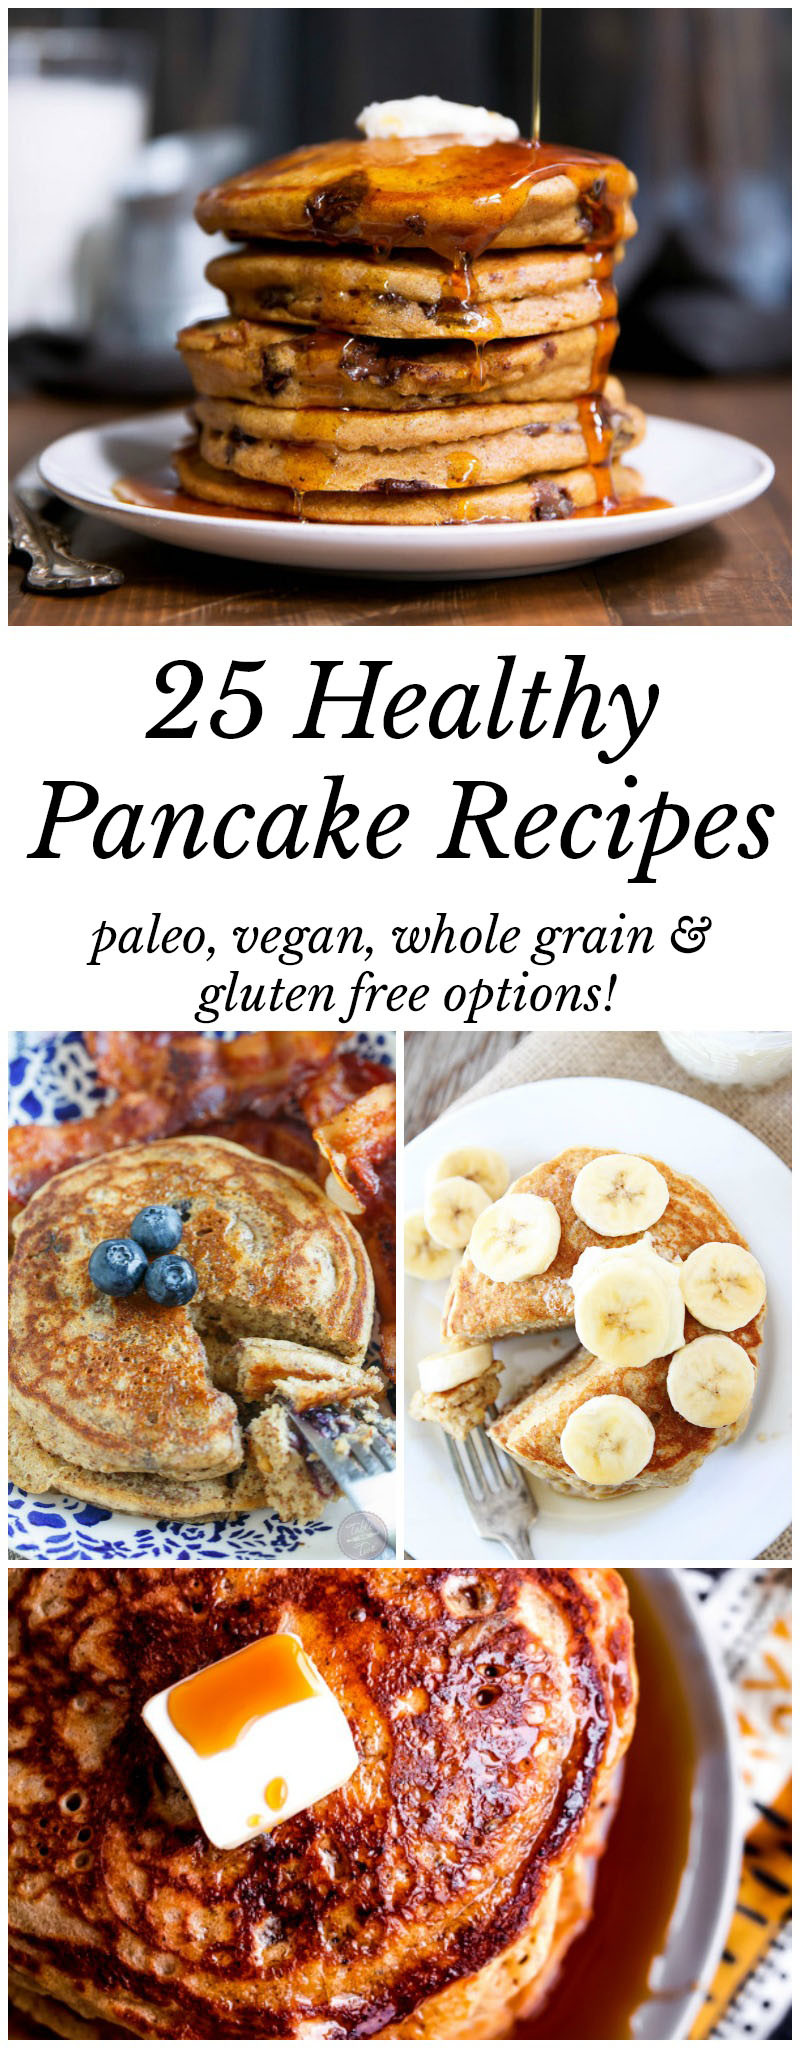 Healthy Pancakes Recipe  25 Healthy Pancake Recipes Worth Waking Up For